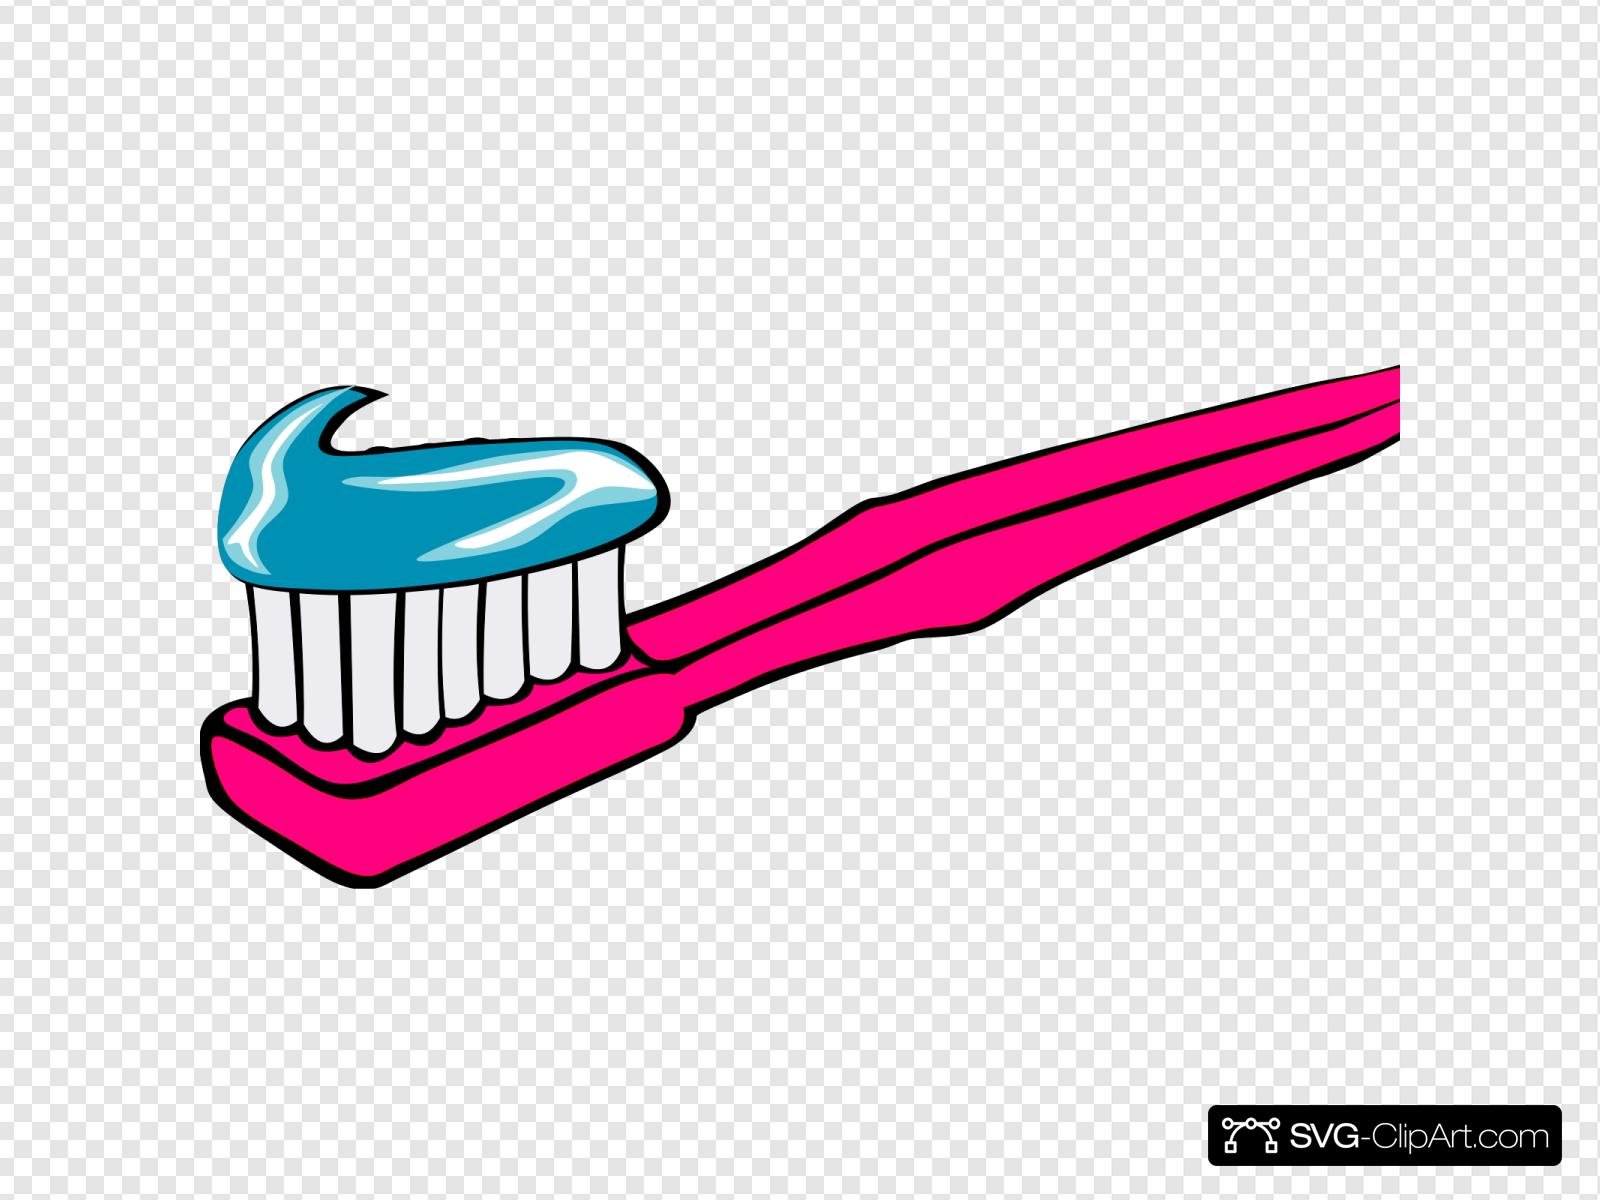 Toothbrush PNG images free download